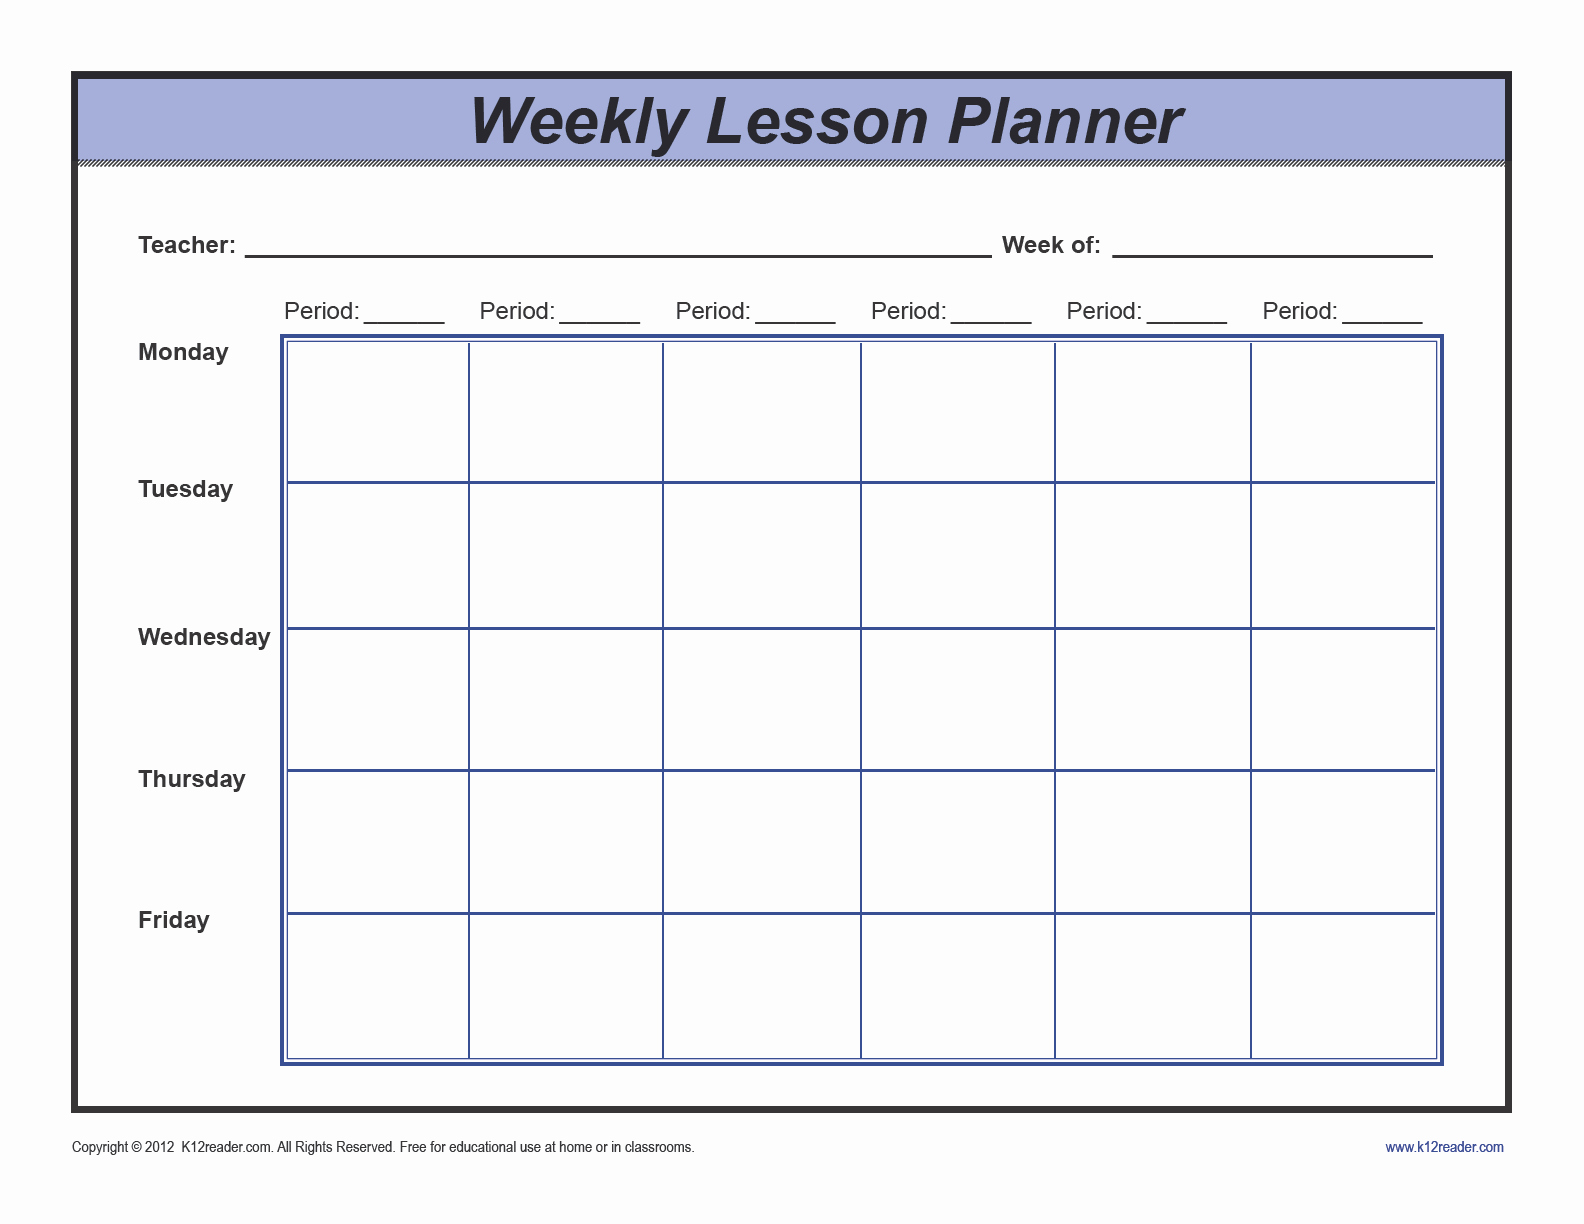 Weekly Lesson Plan Template Beautiful Download Weekly Lesson Plan Template Preschool